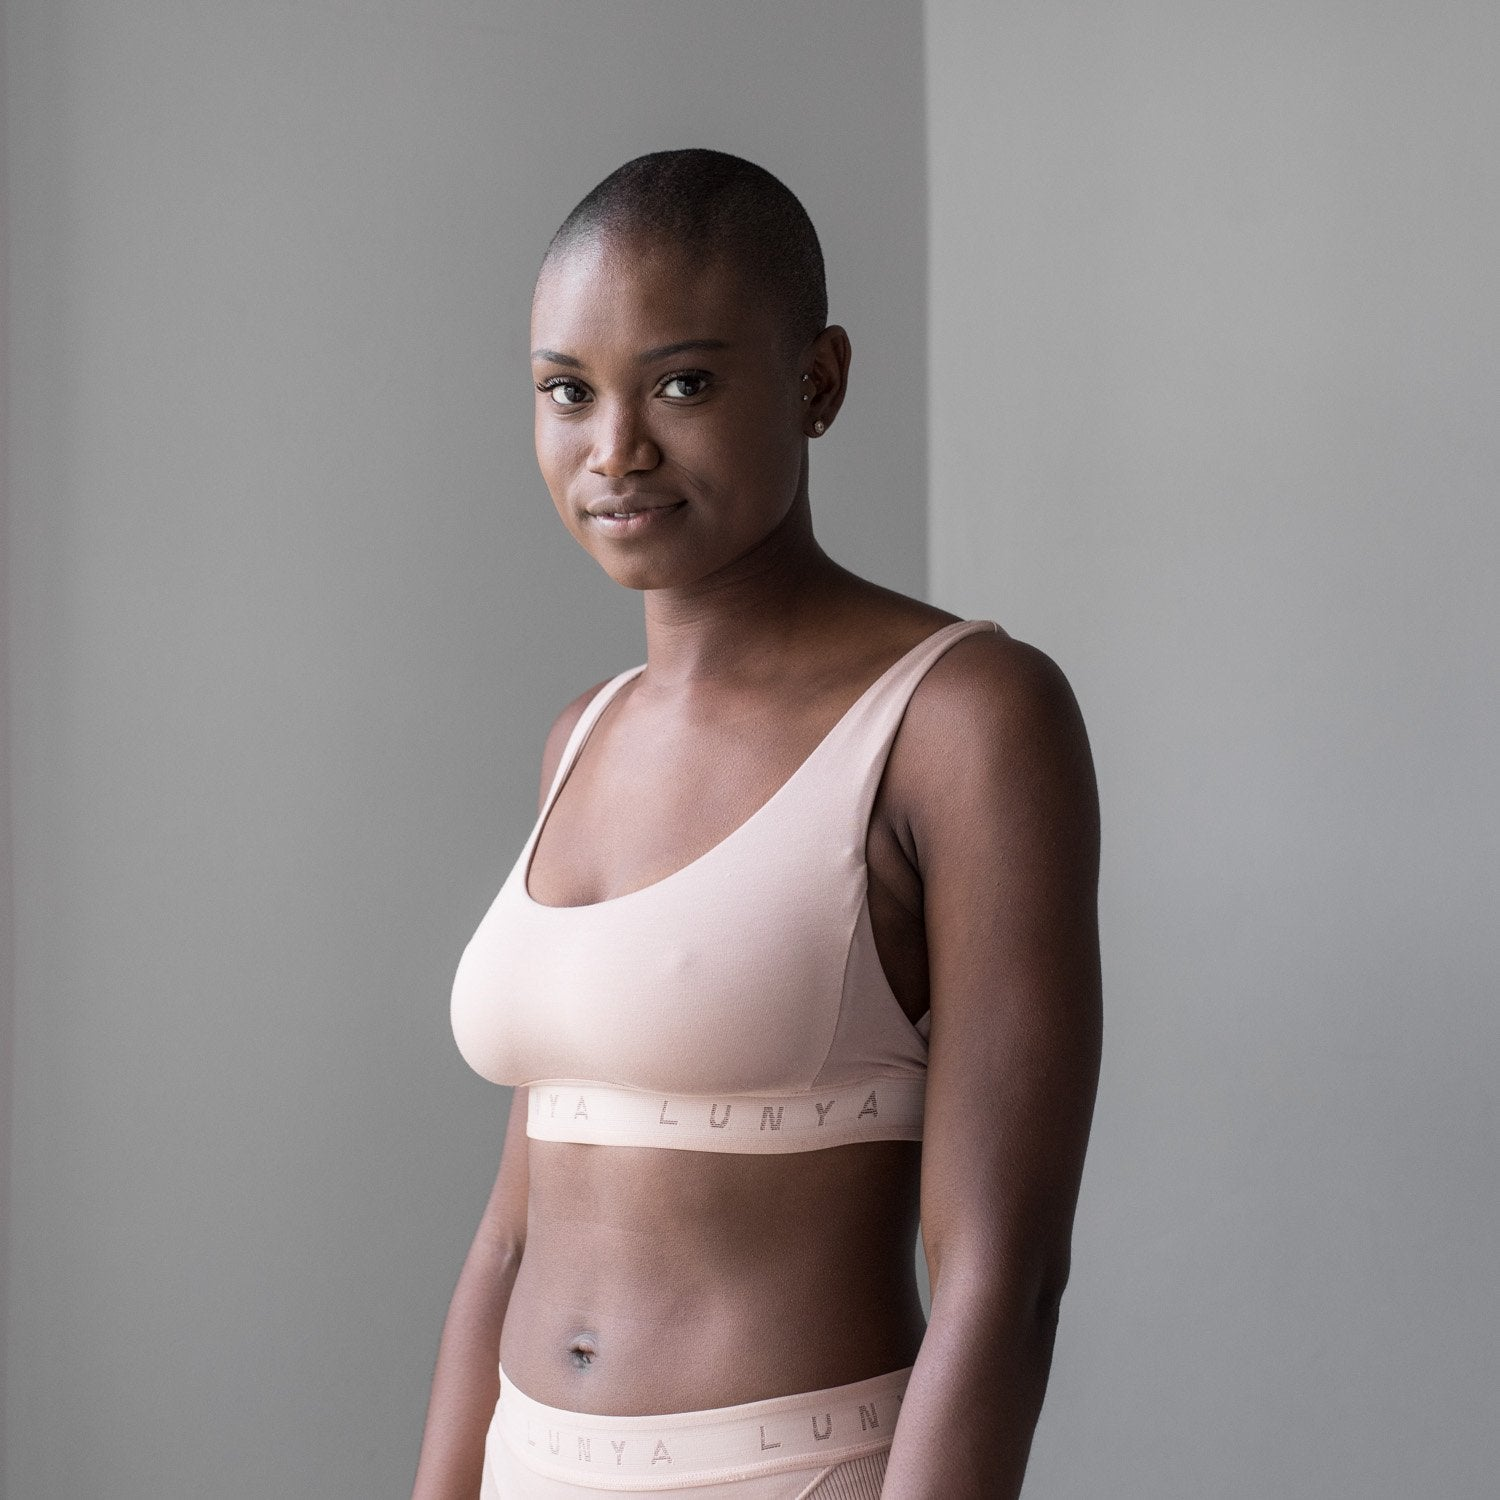 Supportive Modal Well-Rounded Bralette